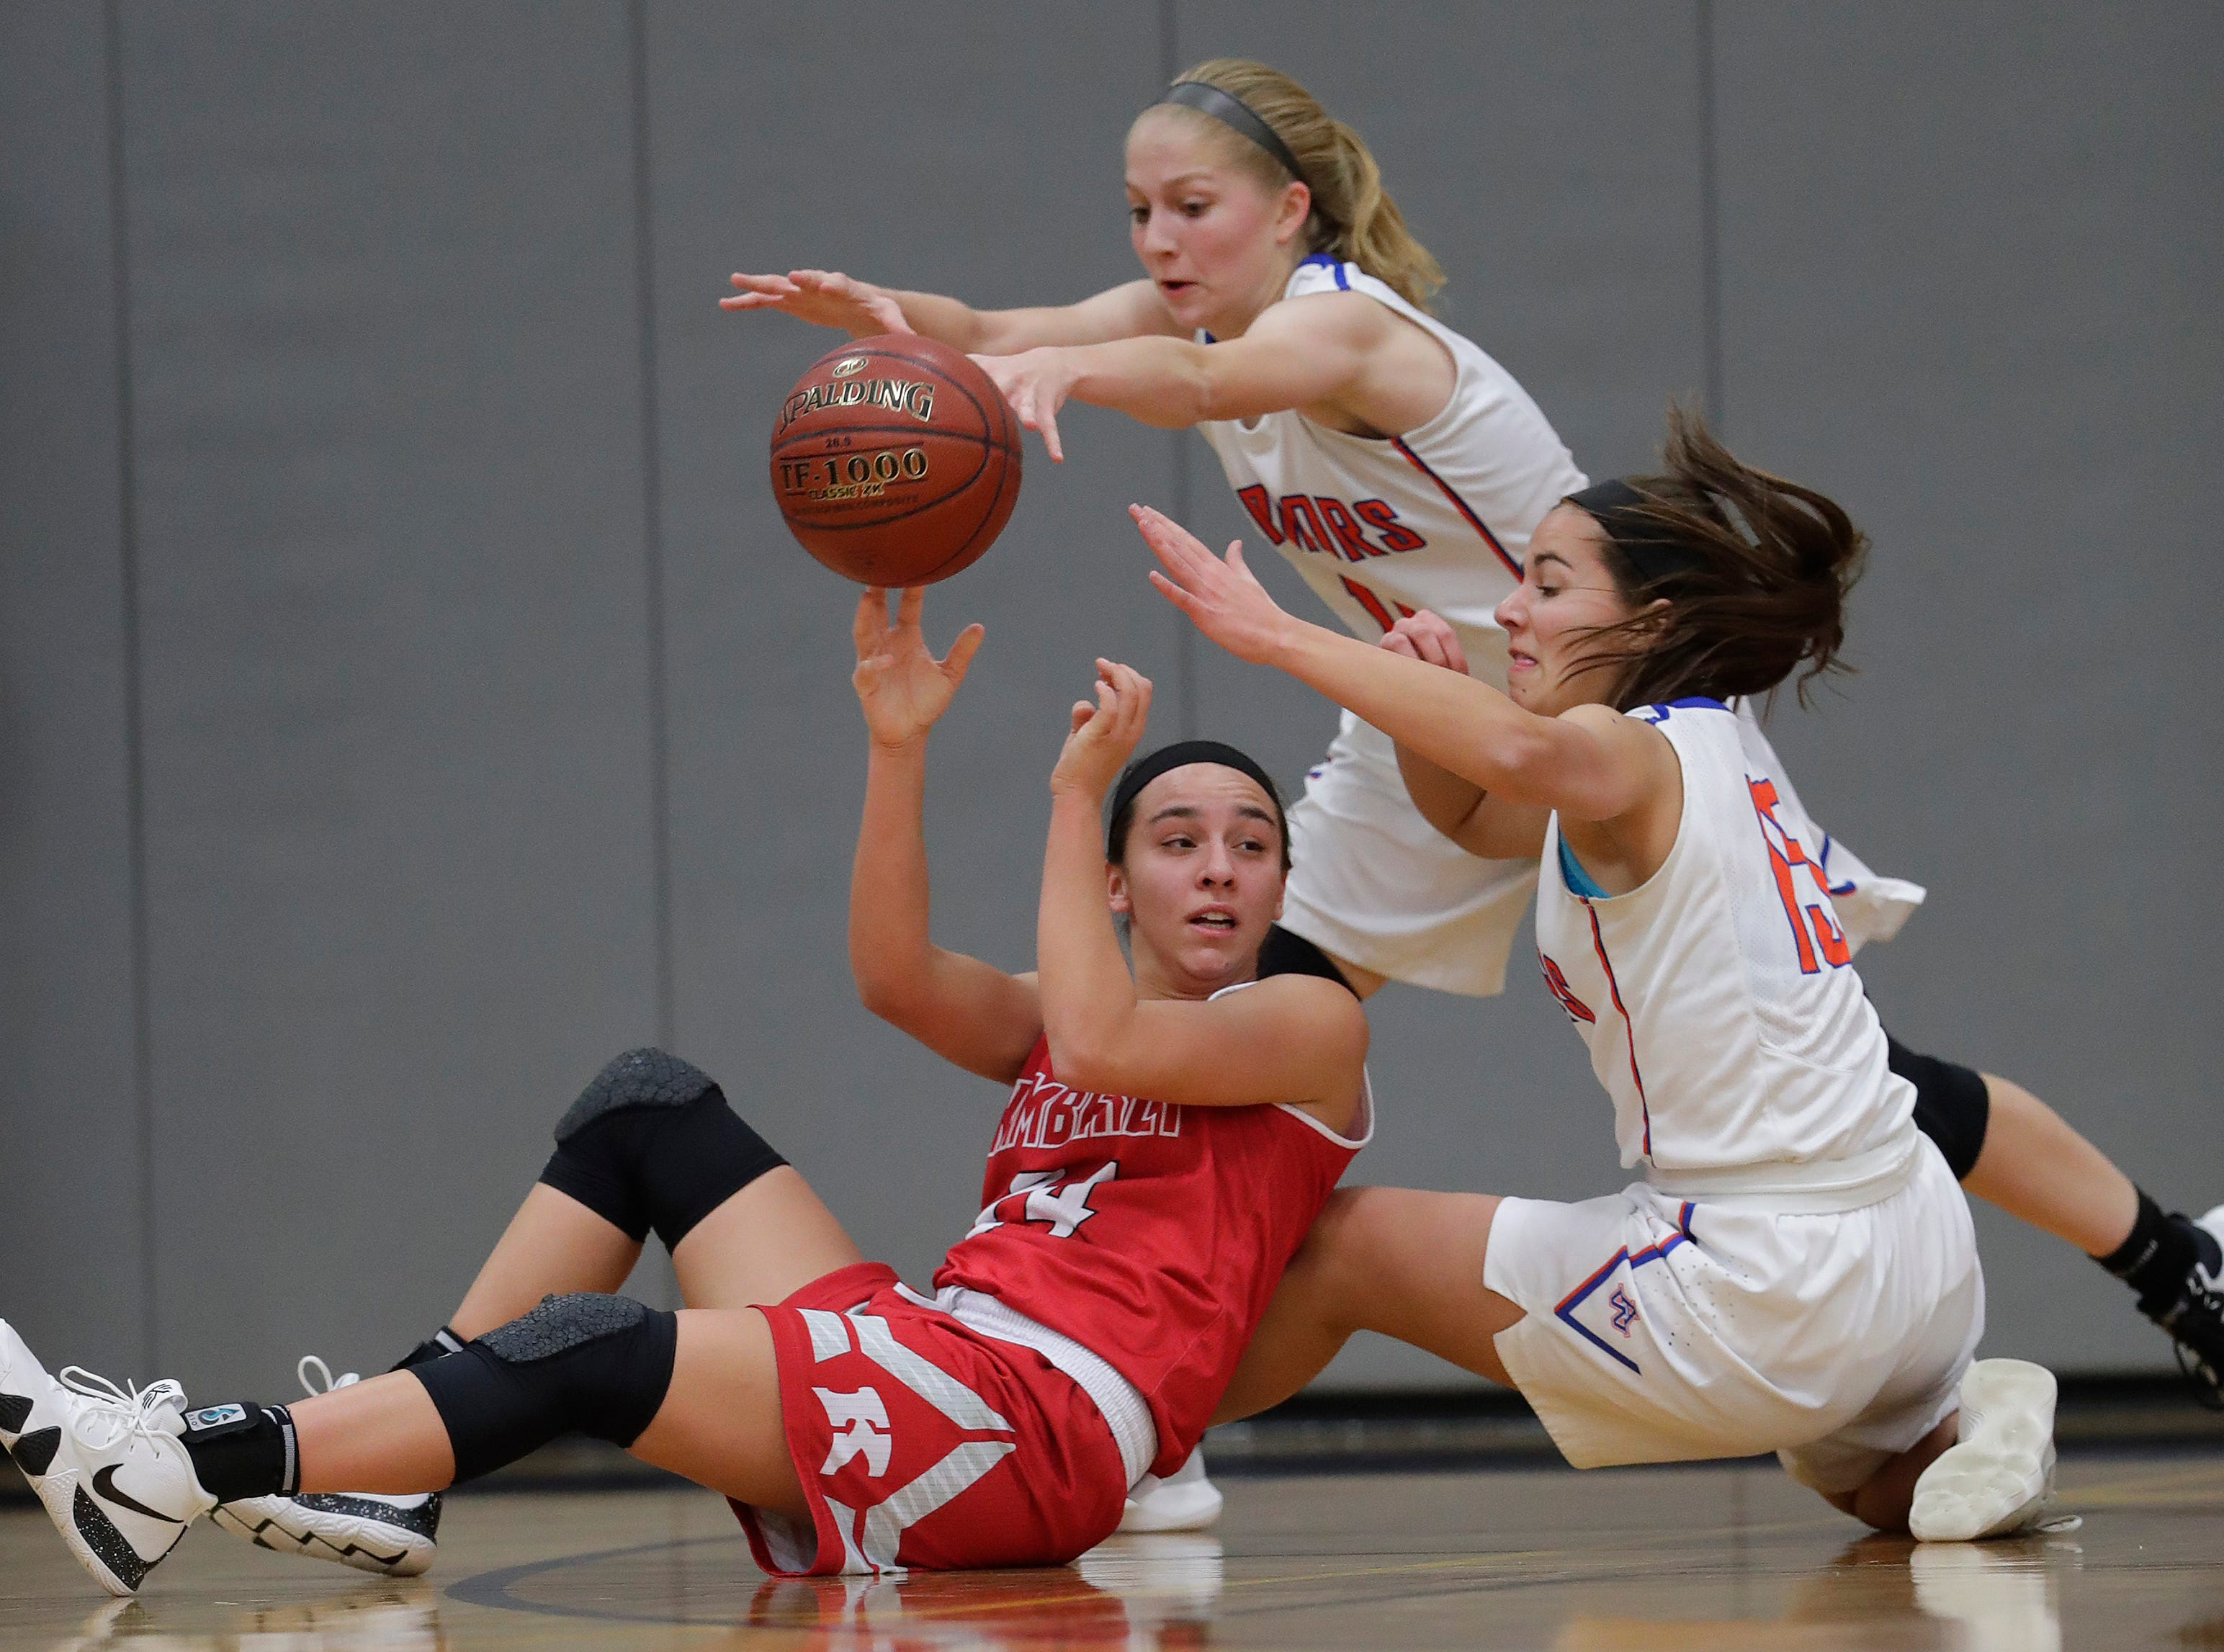 Kimberly High School's Shea Dechant (24) passes the ball under heavy pressure from Appleton West High School's Jamie Winsted (11) and Addie Pauling (15) during their girls basketball game Tuesday, November 27, 2018, in Appleton, Wis. 